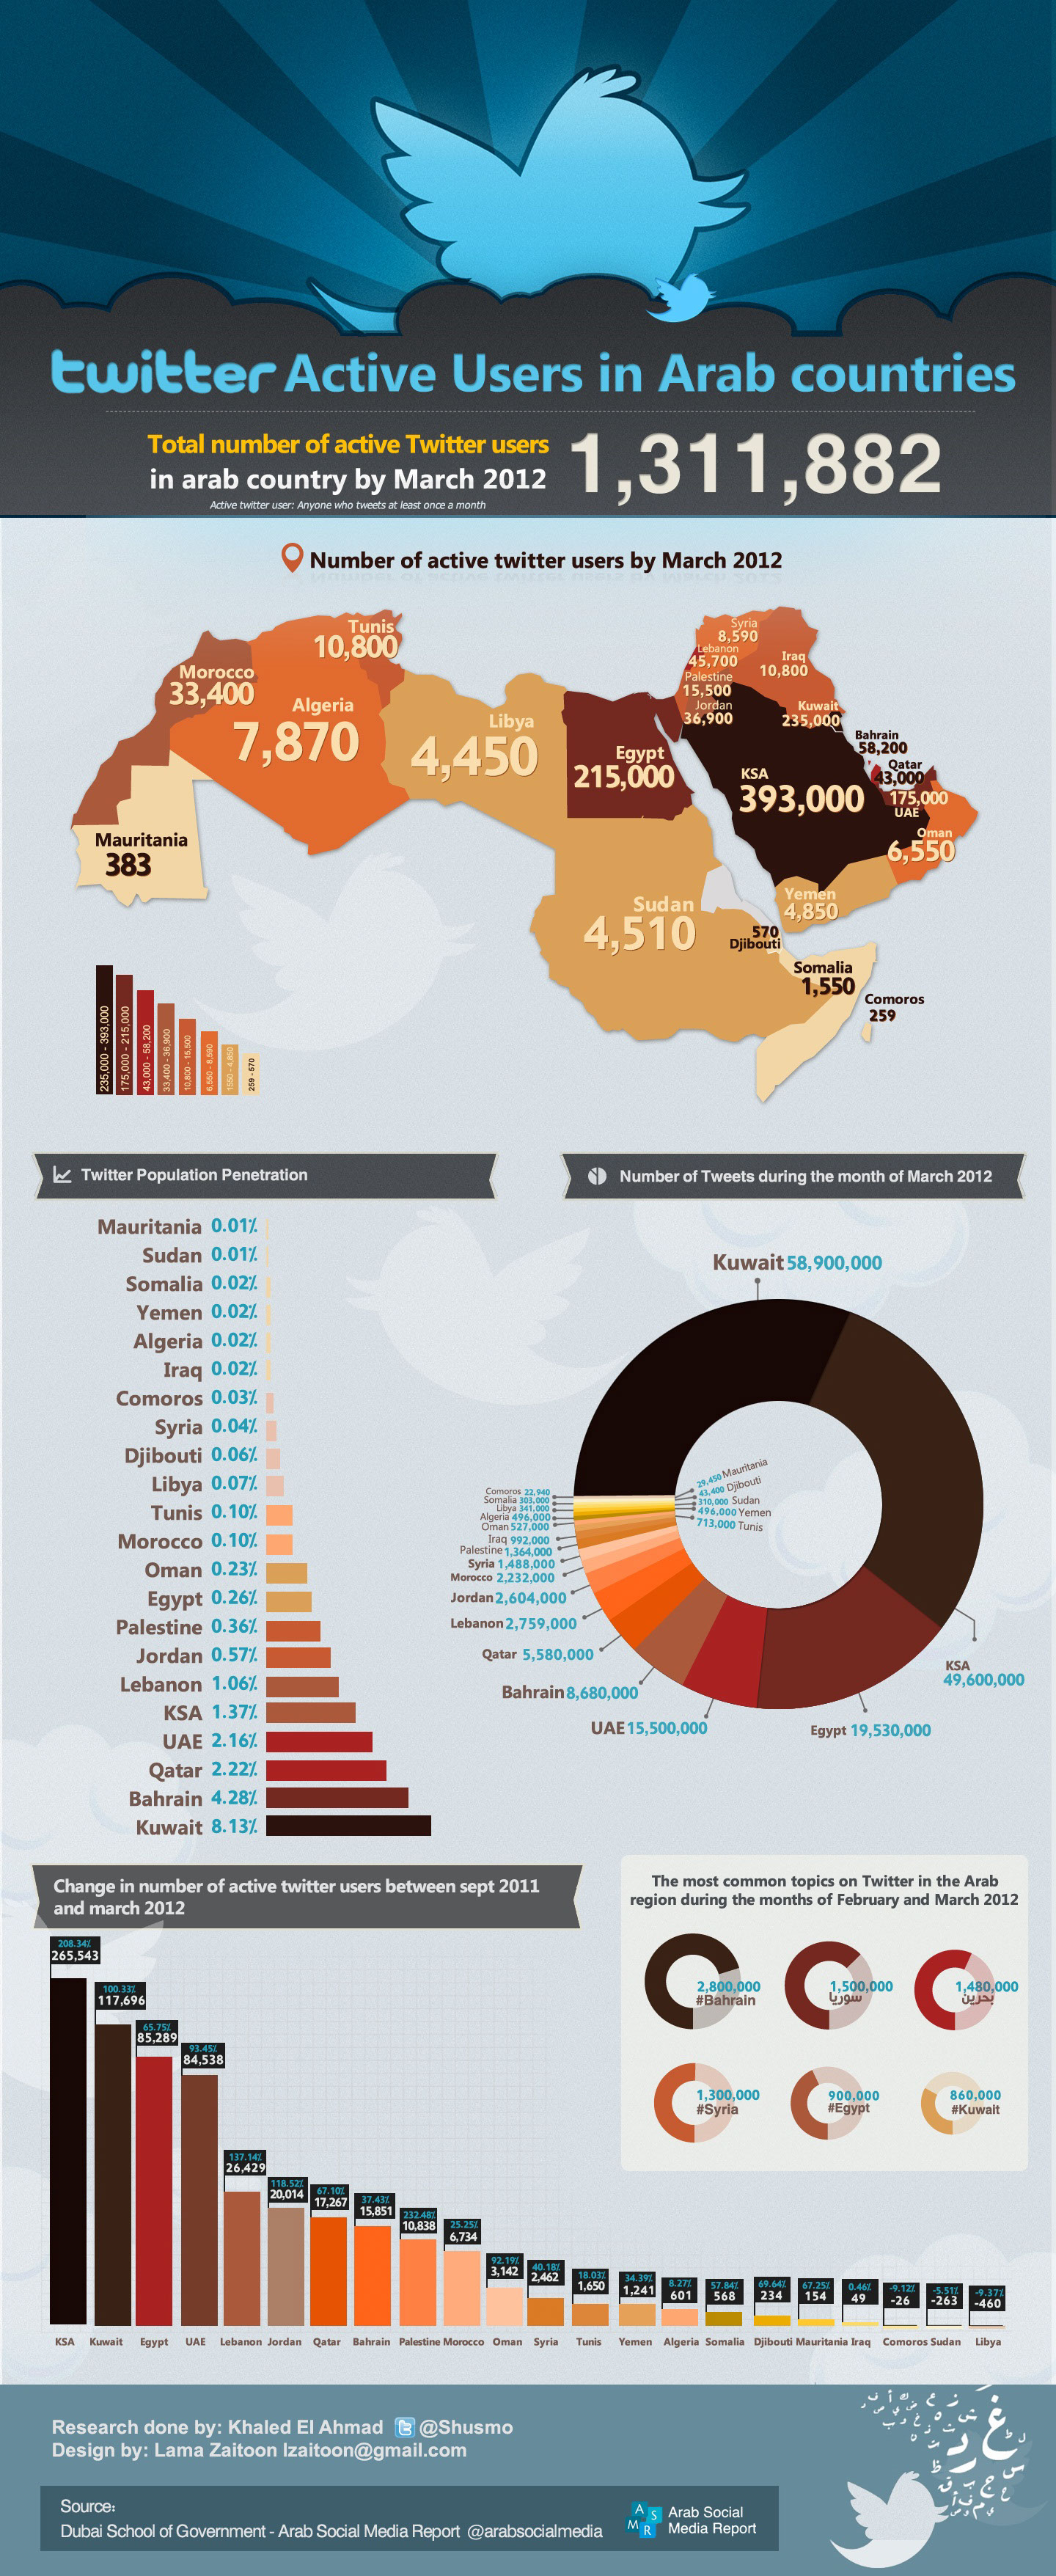 Twitter-Active-Users-In-Arab-Countries-infographic